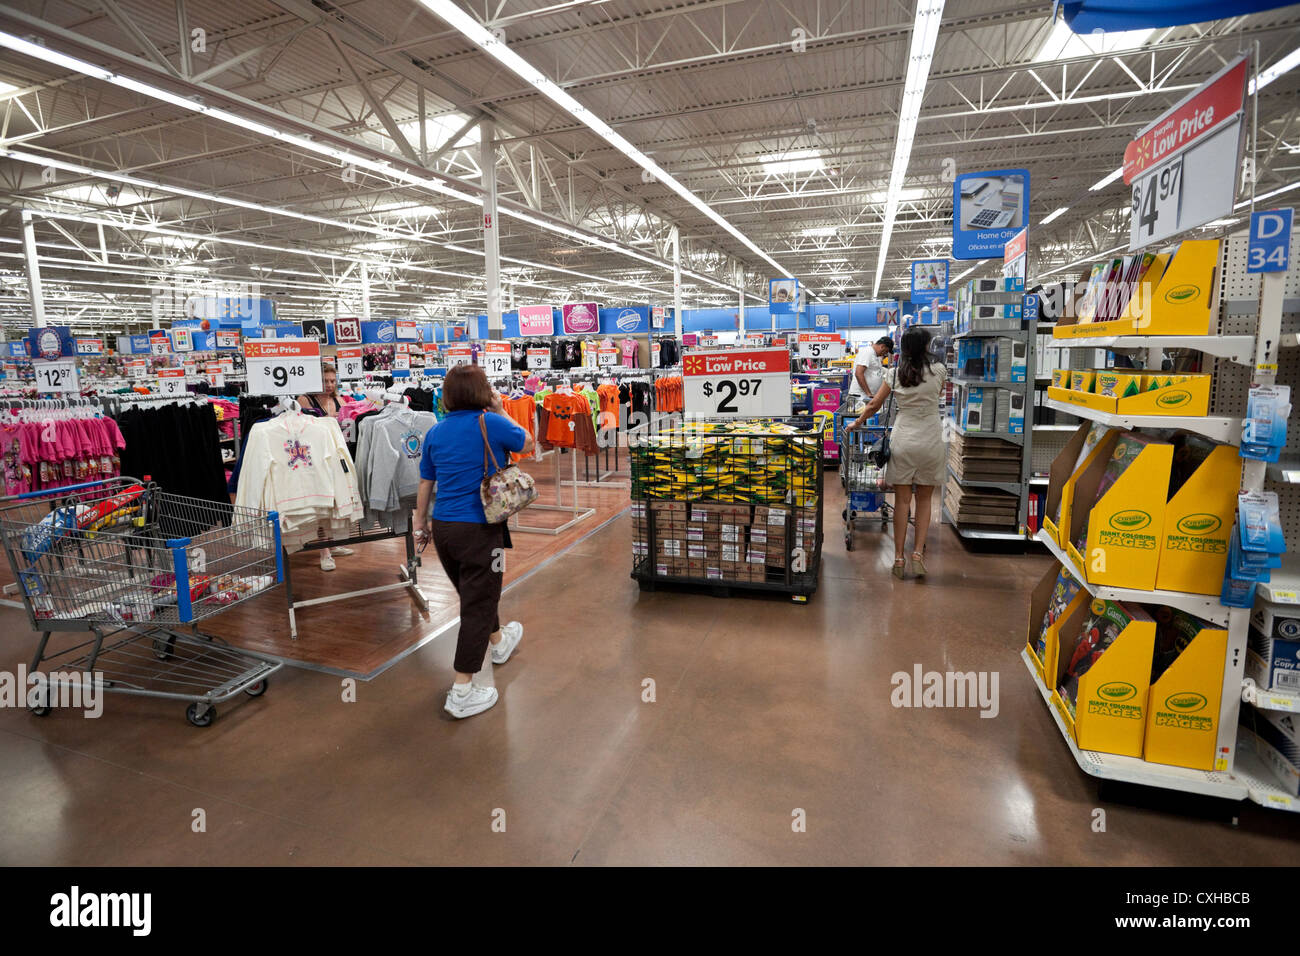 interior of a walmart store in miami florida usa stock photo royalty free image 50783947 alamy. Black Bedroom Furniture Sets. Home Design Ideas